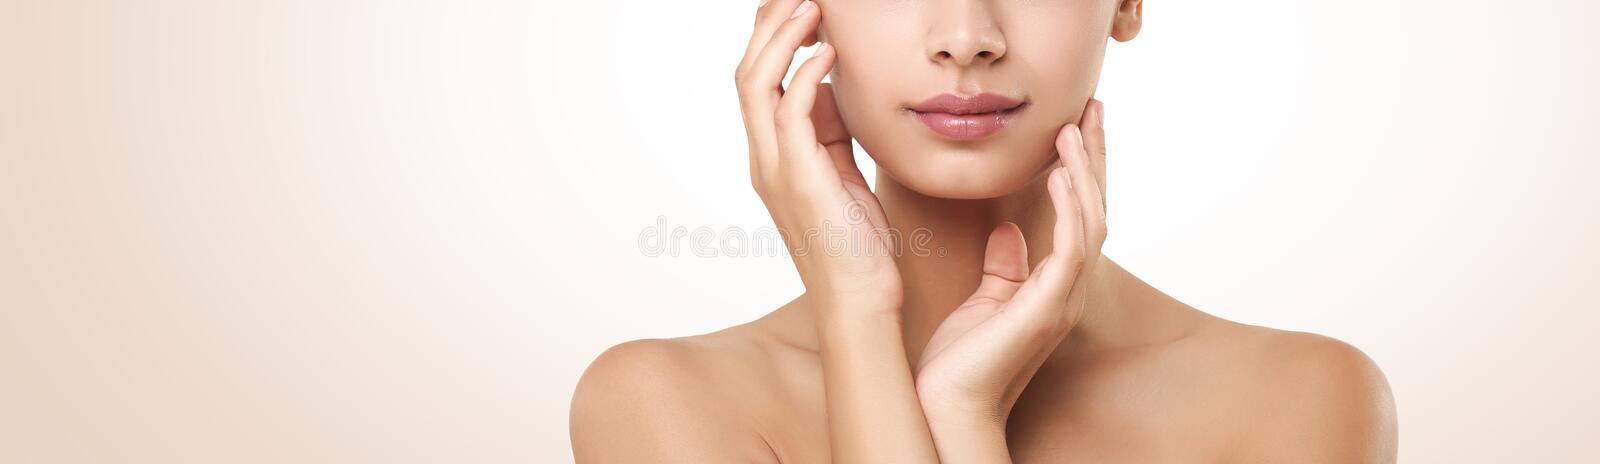 Beautiful indian girl with perfect skin touching face, crop stock image